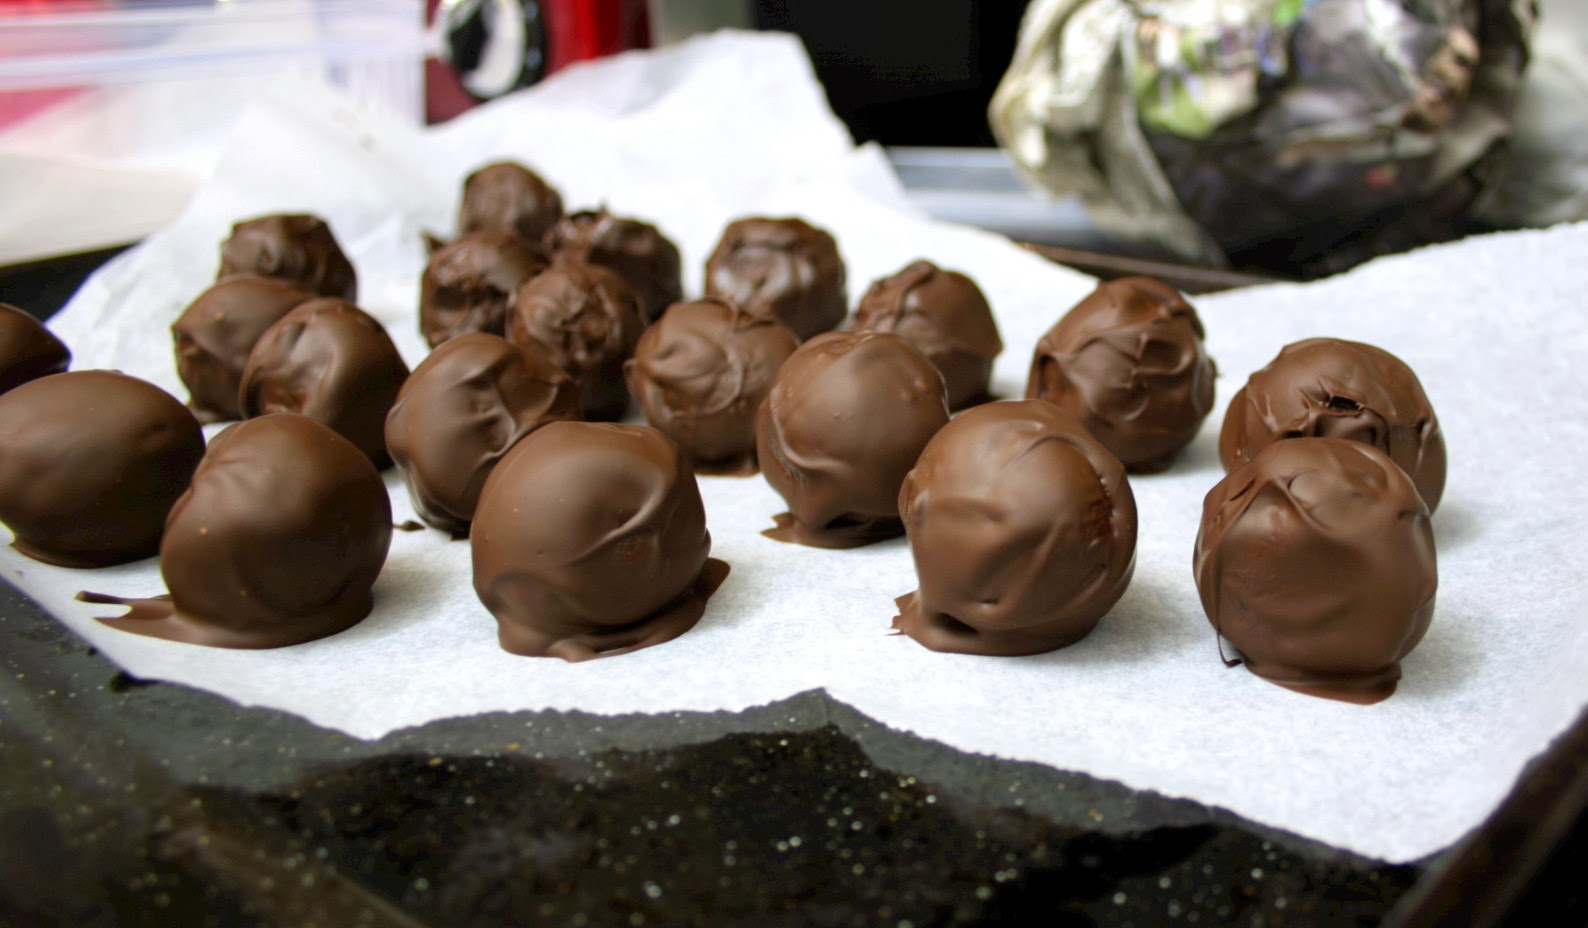 Truffles made from my grandad's recipe, fresh out of their chocolate bath